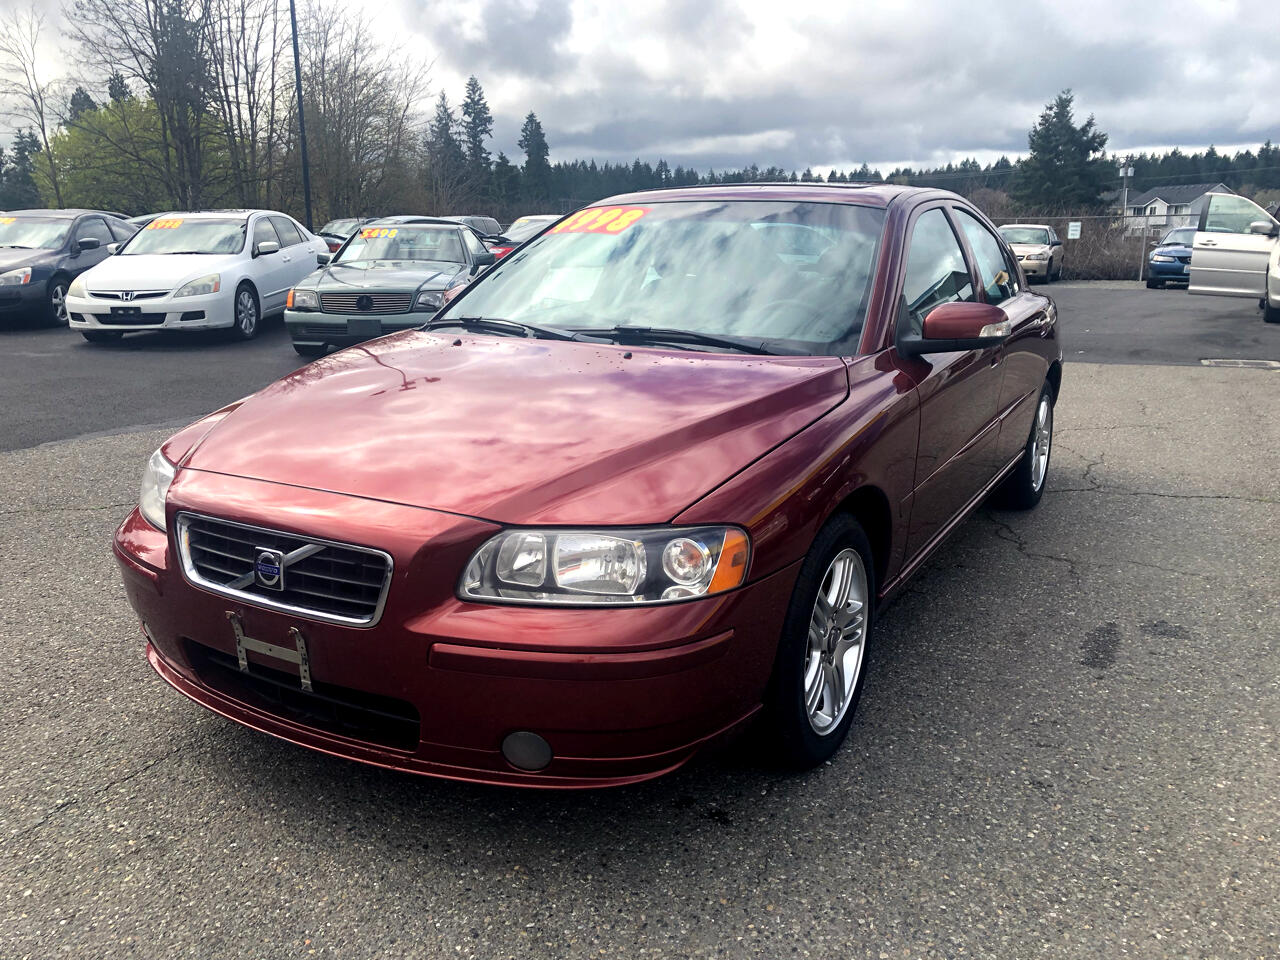 2008 Volvo S60 4dr Sdn 2.5T FWD